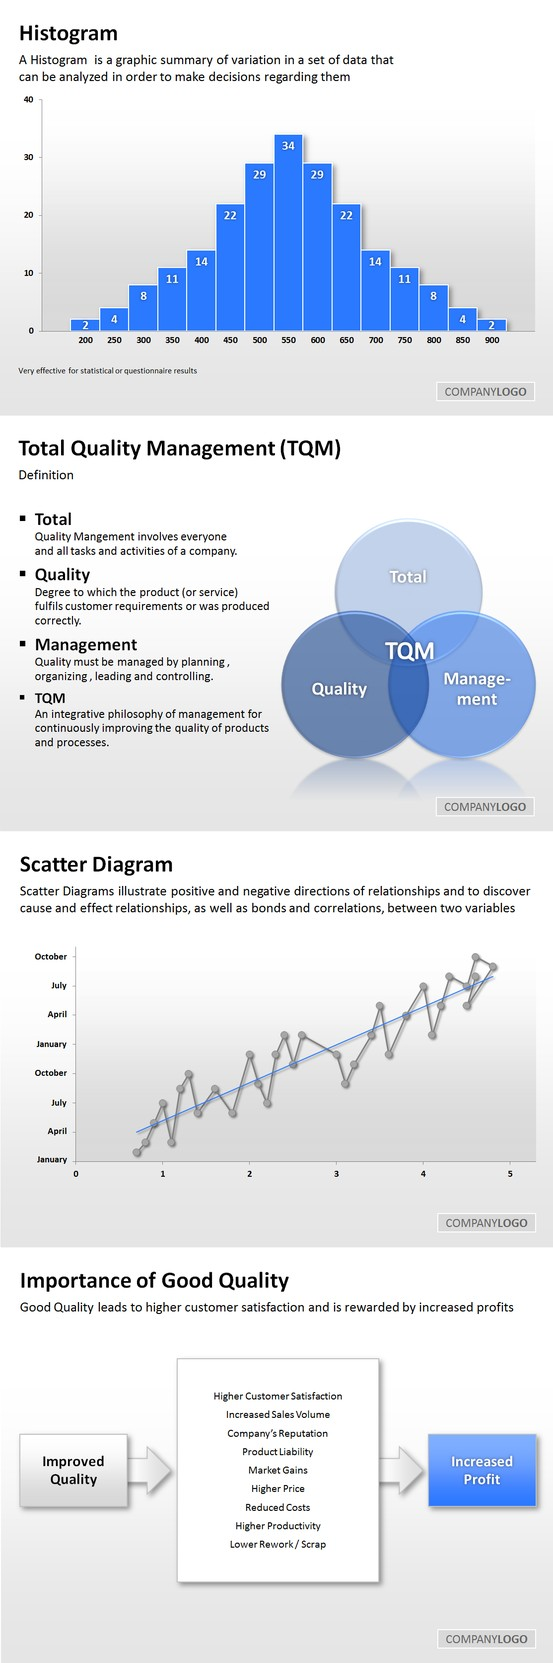 total quality management at family businesses essay Total quality management (tqm) is an approach that organizations use to improve their internal processes and increase customer satisfaction when it is properly implemented, this style of management can lead to decreased costs related to corrective or preventative maintenance, better overall performance, and an increased number of happy and.